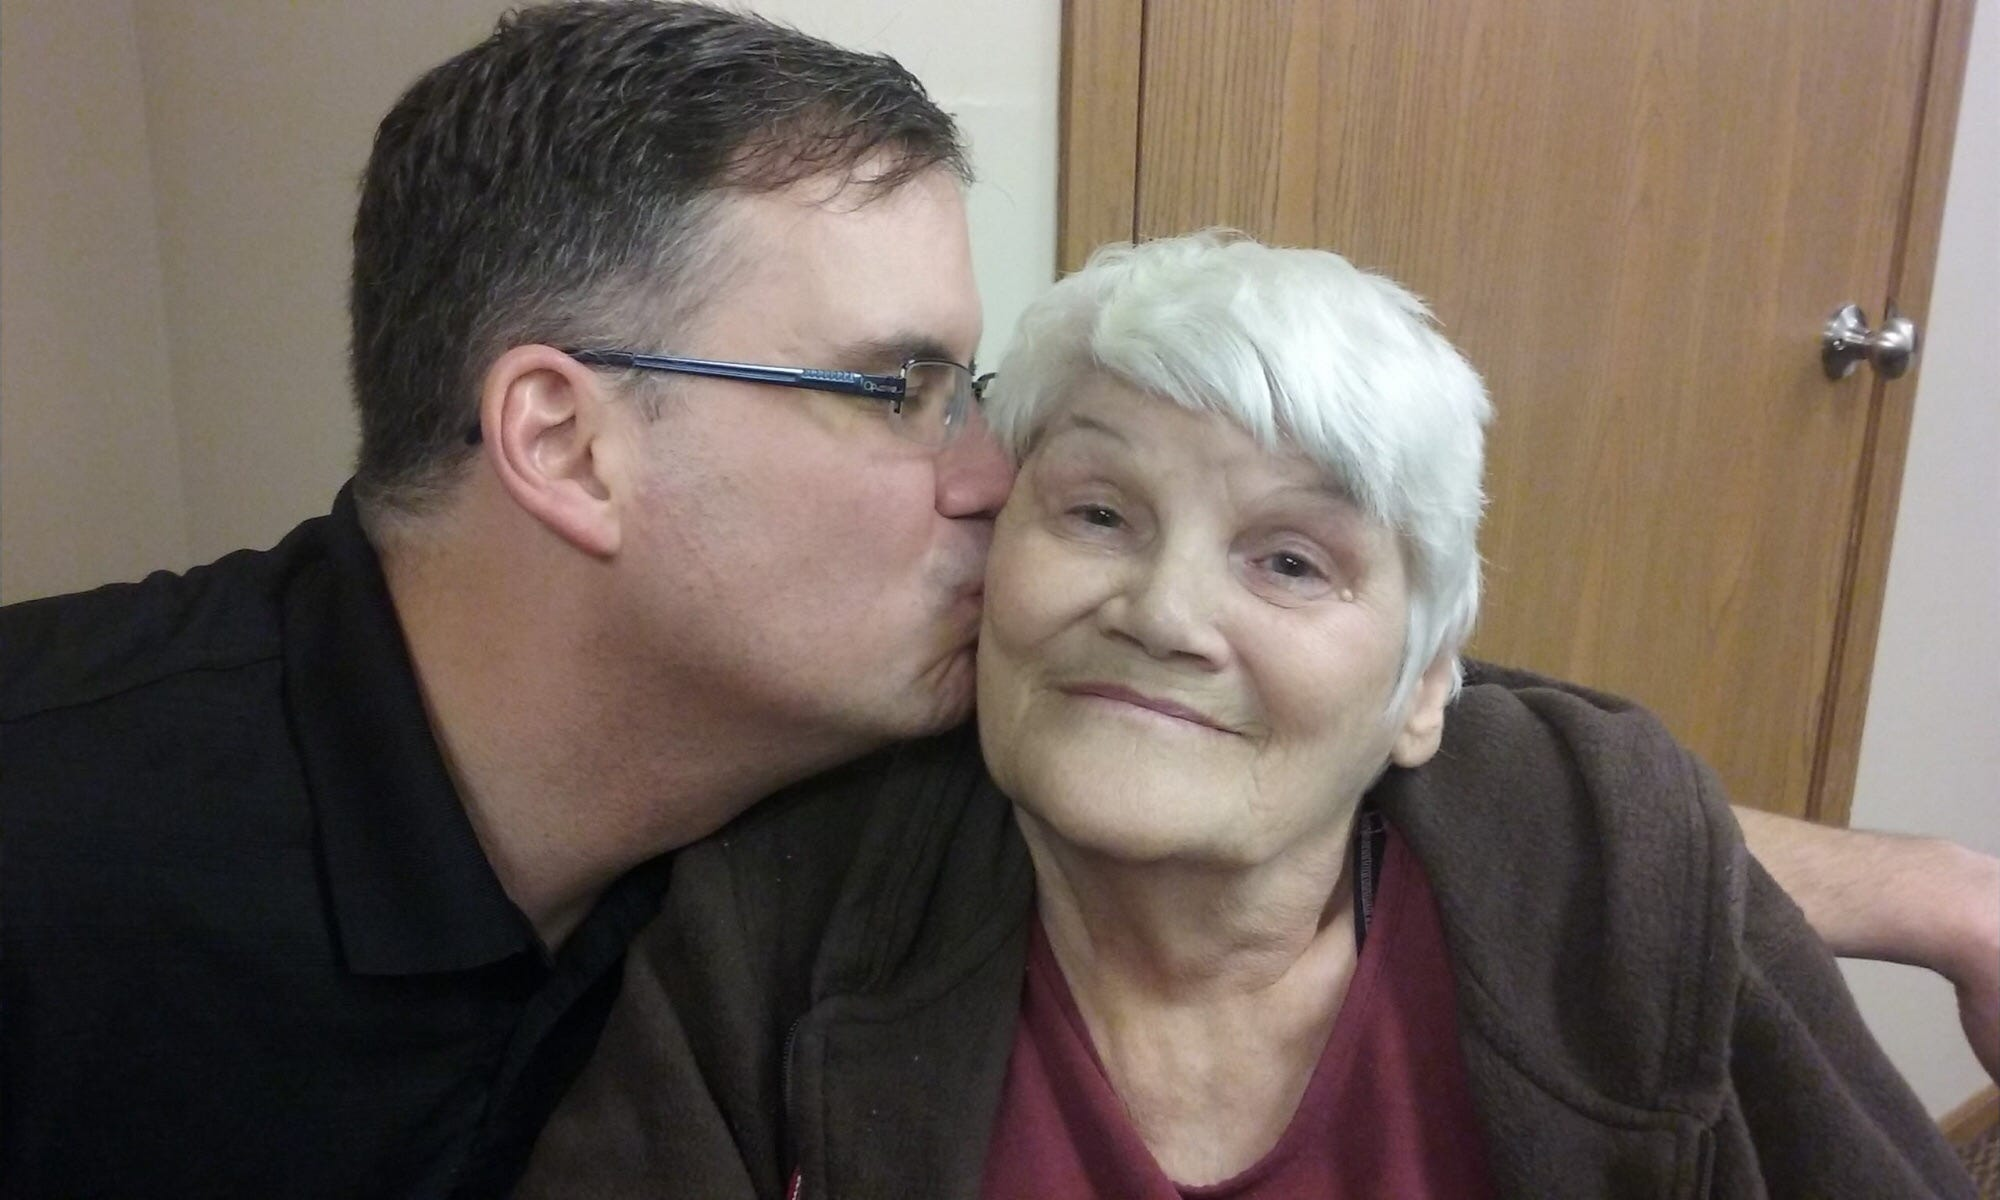 Bryan Daulton kisses his mother, Sicely Daulton. She died in 2017 after falling 16 times at Aperion Care Kokomo, according to a wrongful death suit he filed.